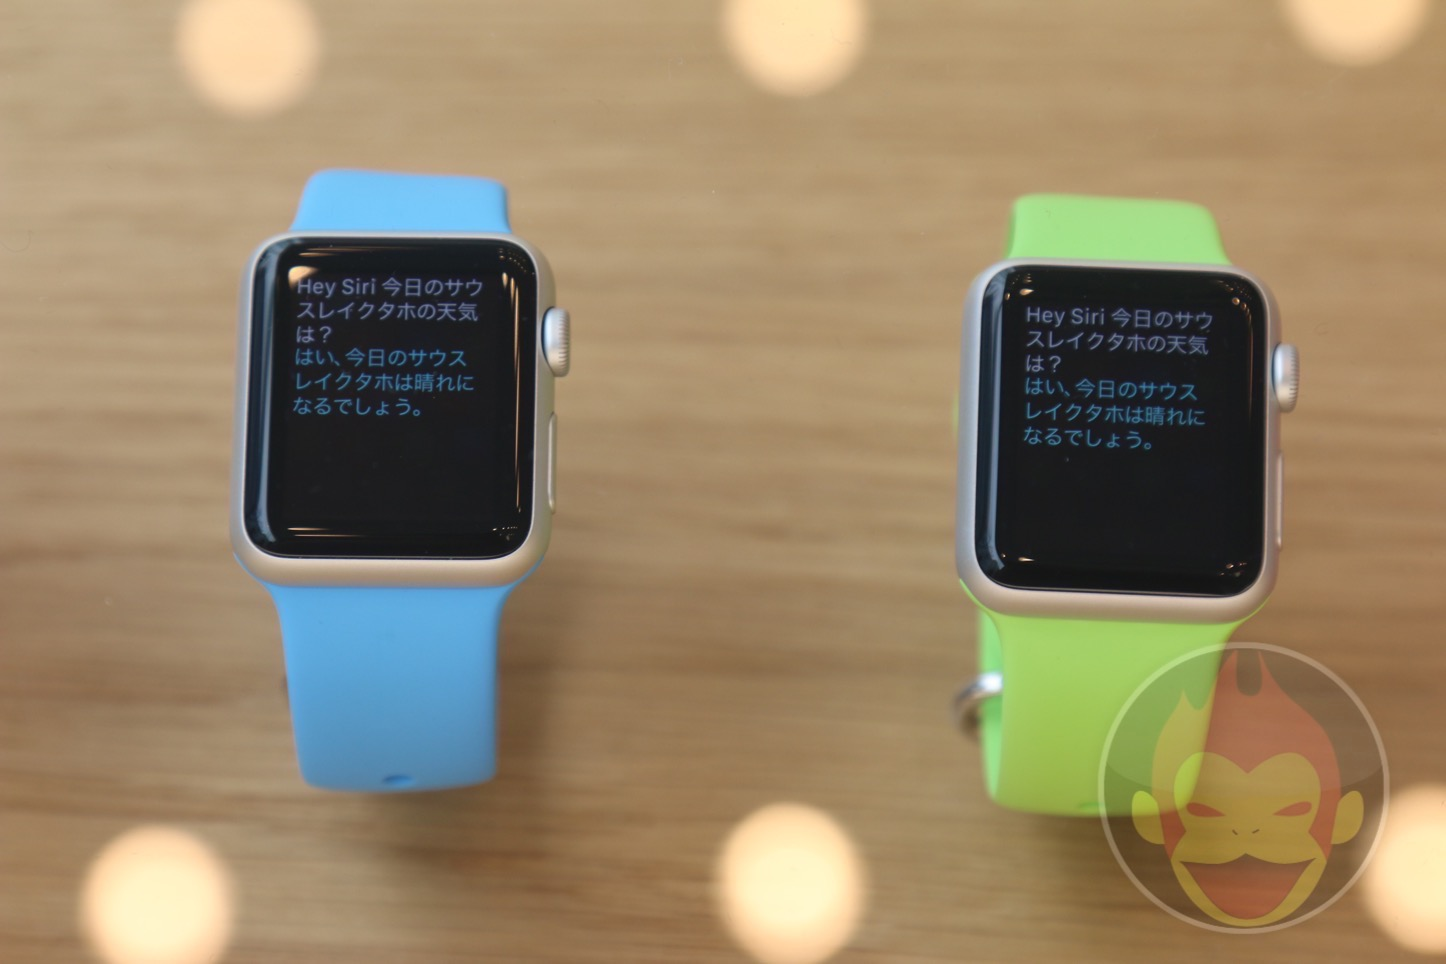 Apple Watch Omotesando